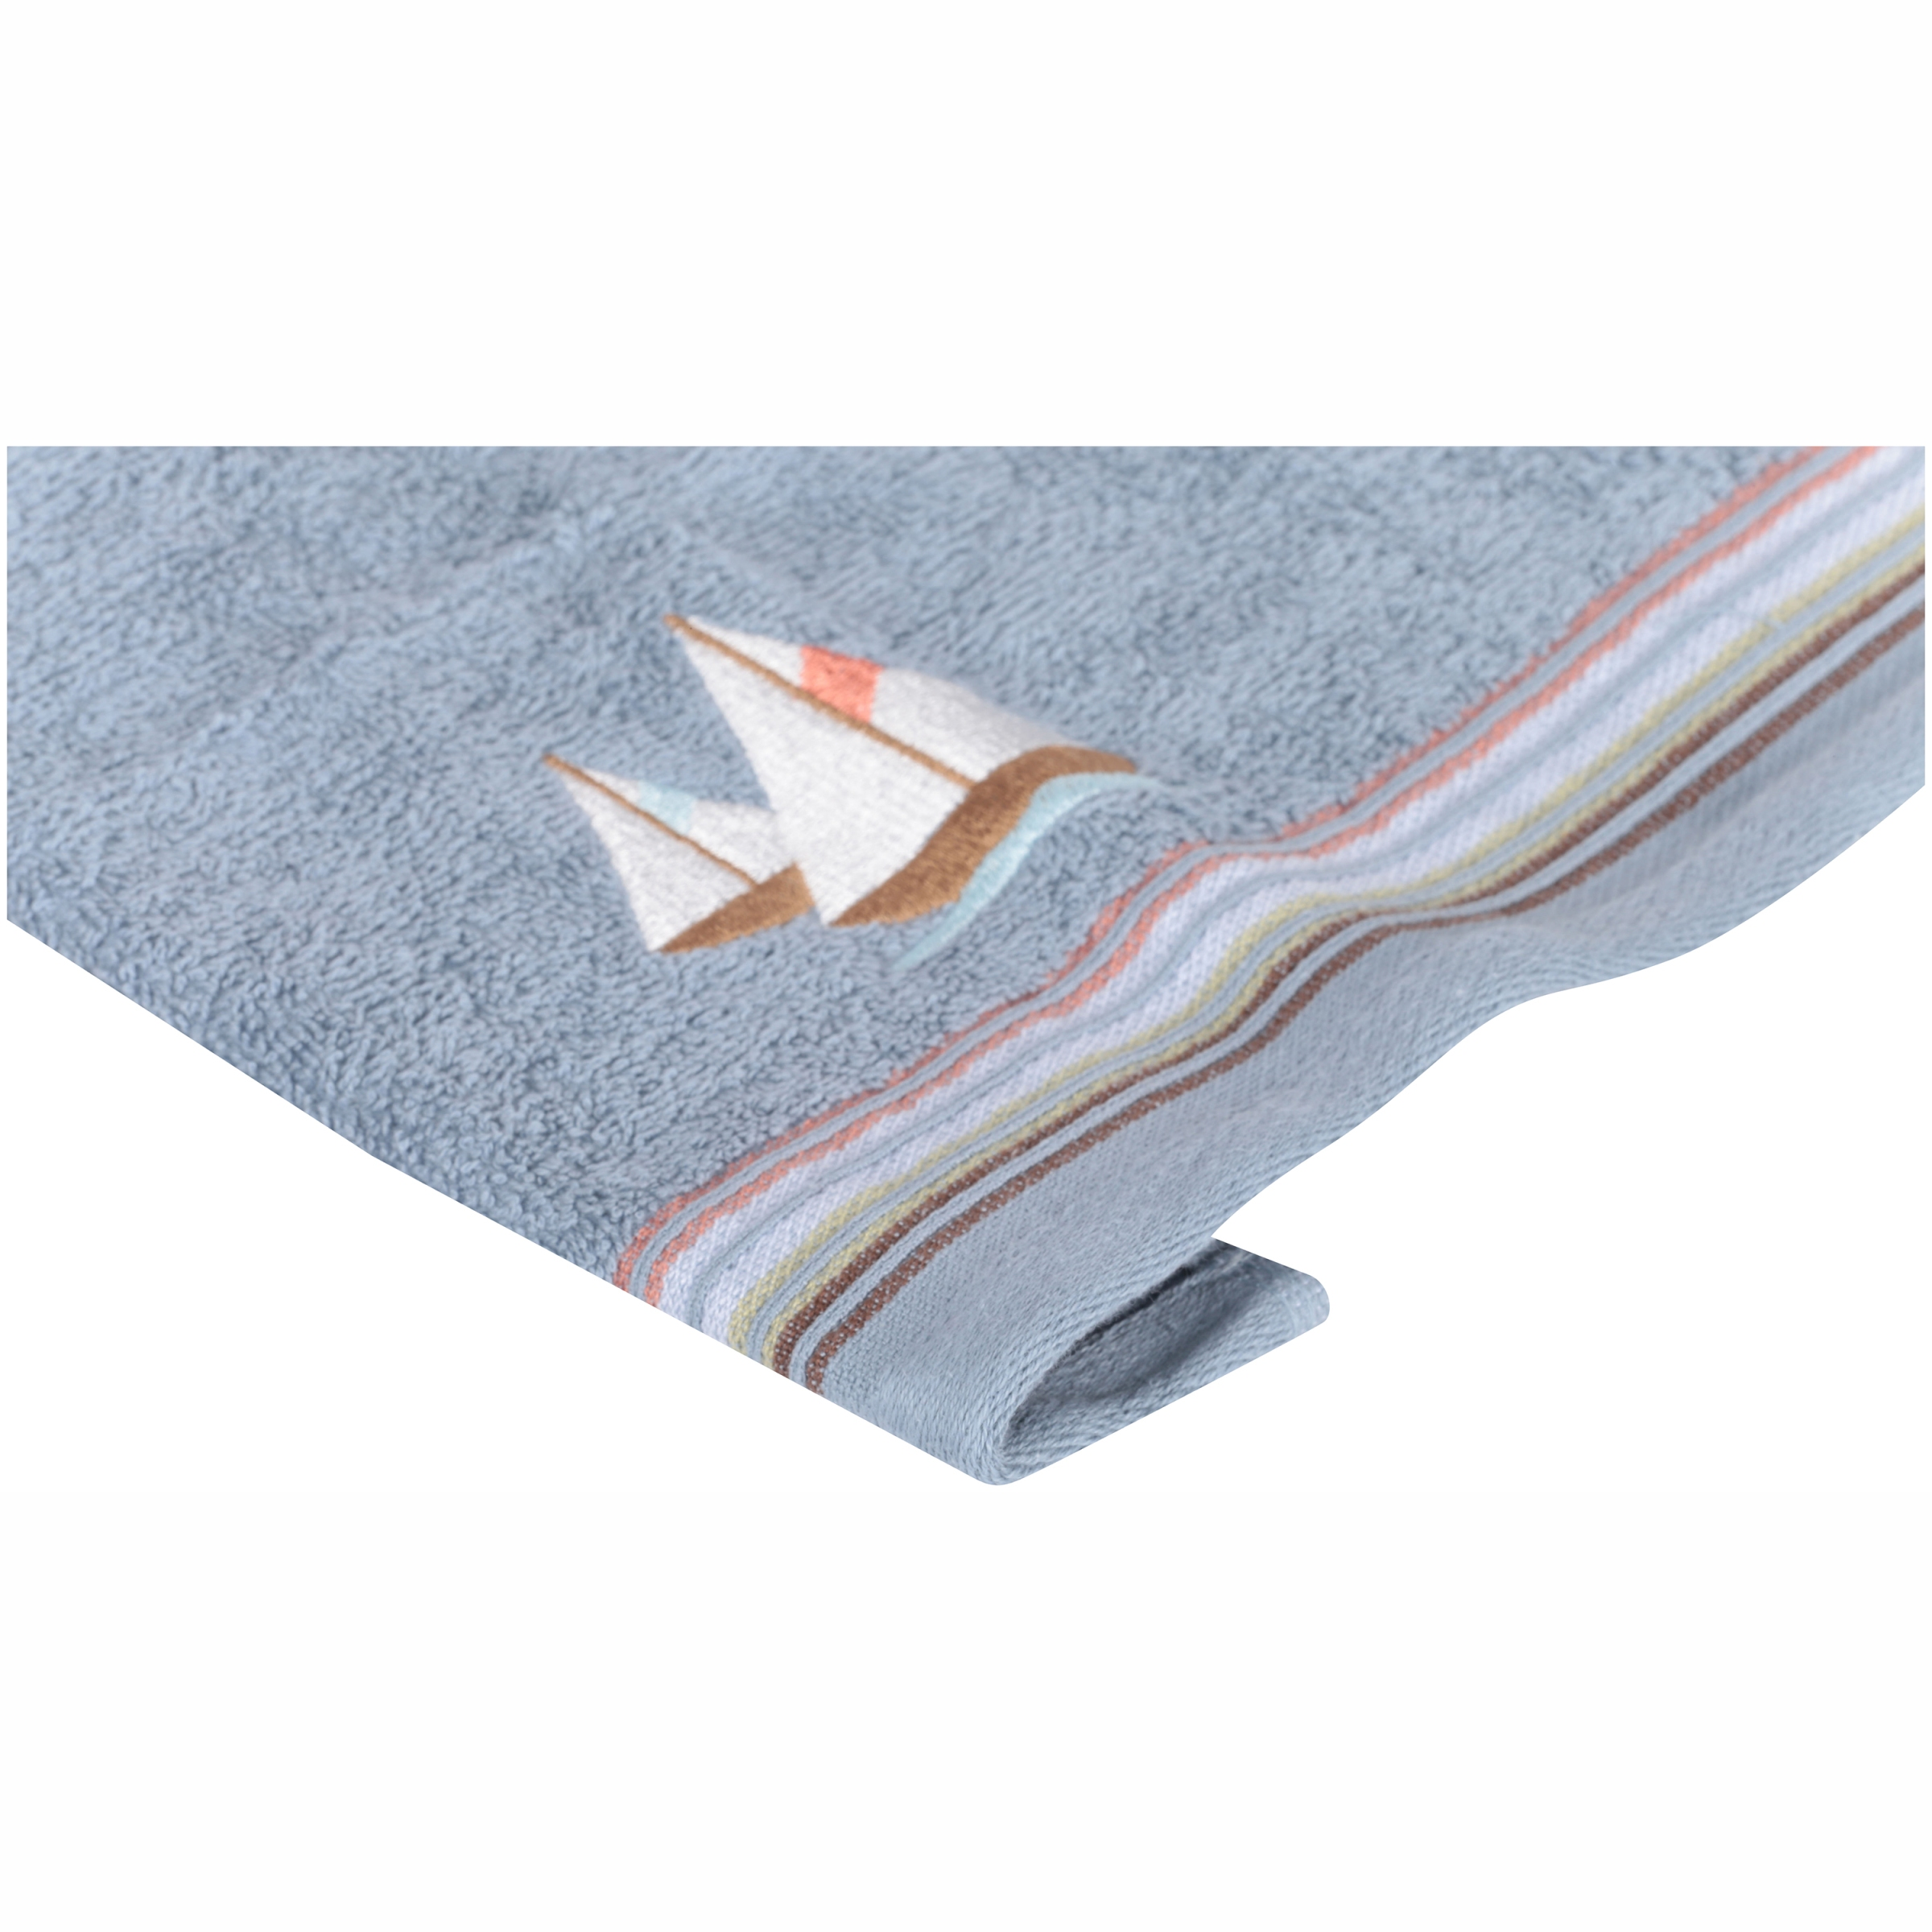 Mainstays Catching Rays Bath Towel Collection by Saturday Knight Ltd.